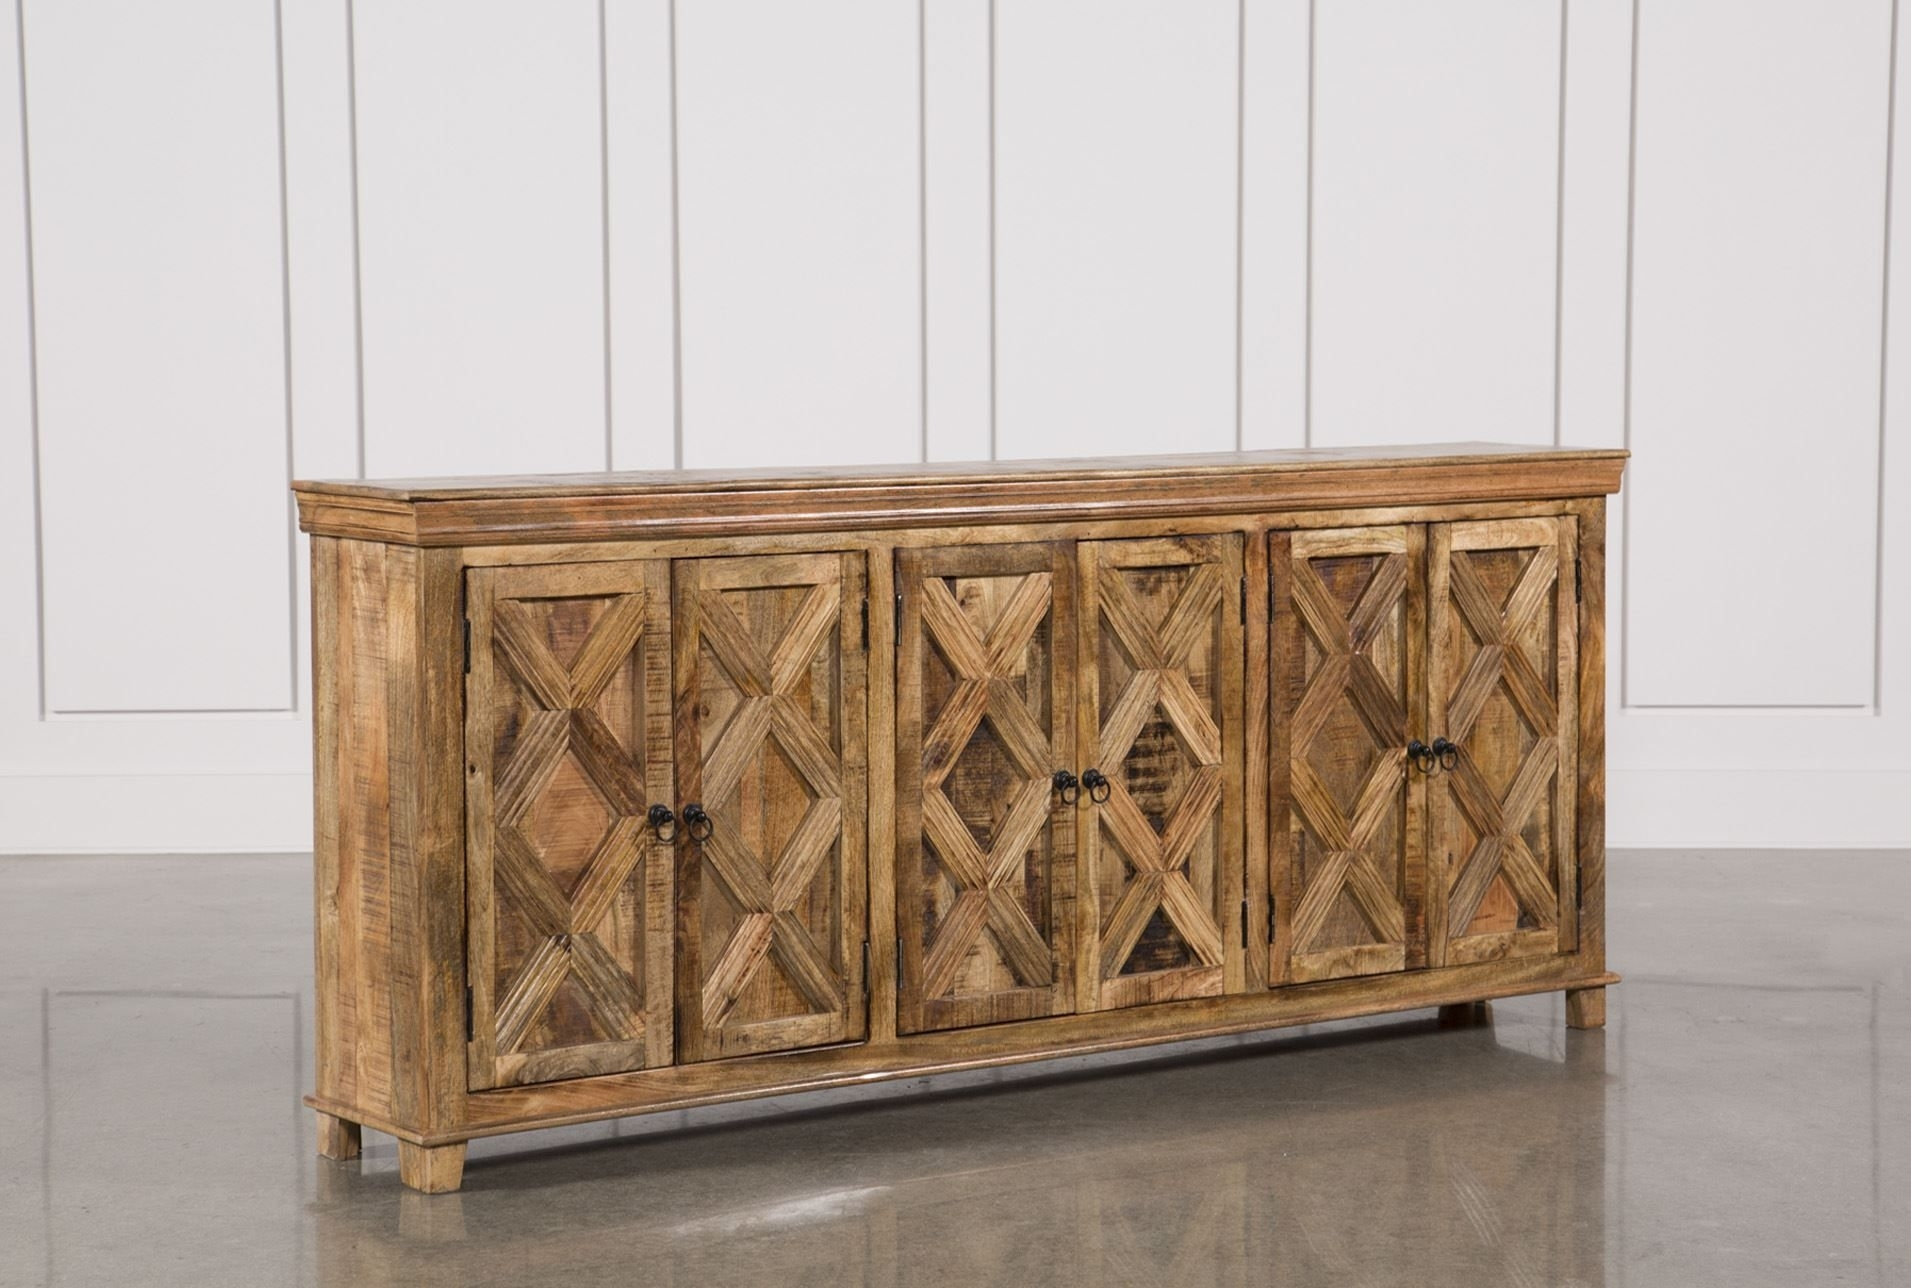 Mango Wood Tan Finish 6 Door Sideboard | Doors, Woods And Living Rooms Intended For Newest Reclaimed Pine Turquoise 4 Door Sideboards (View 7 of 20)